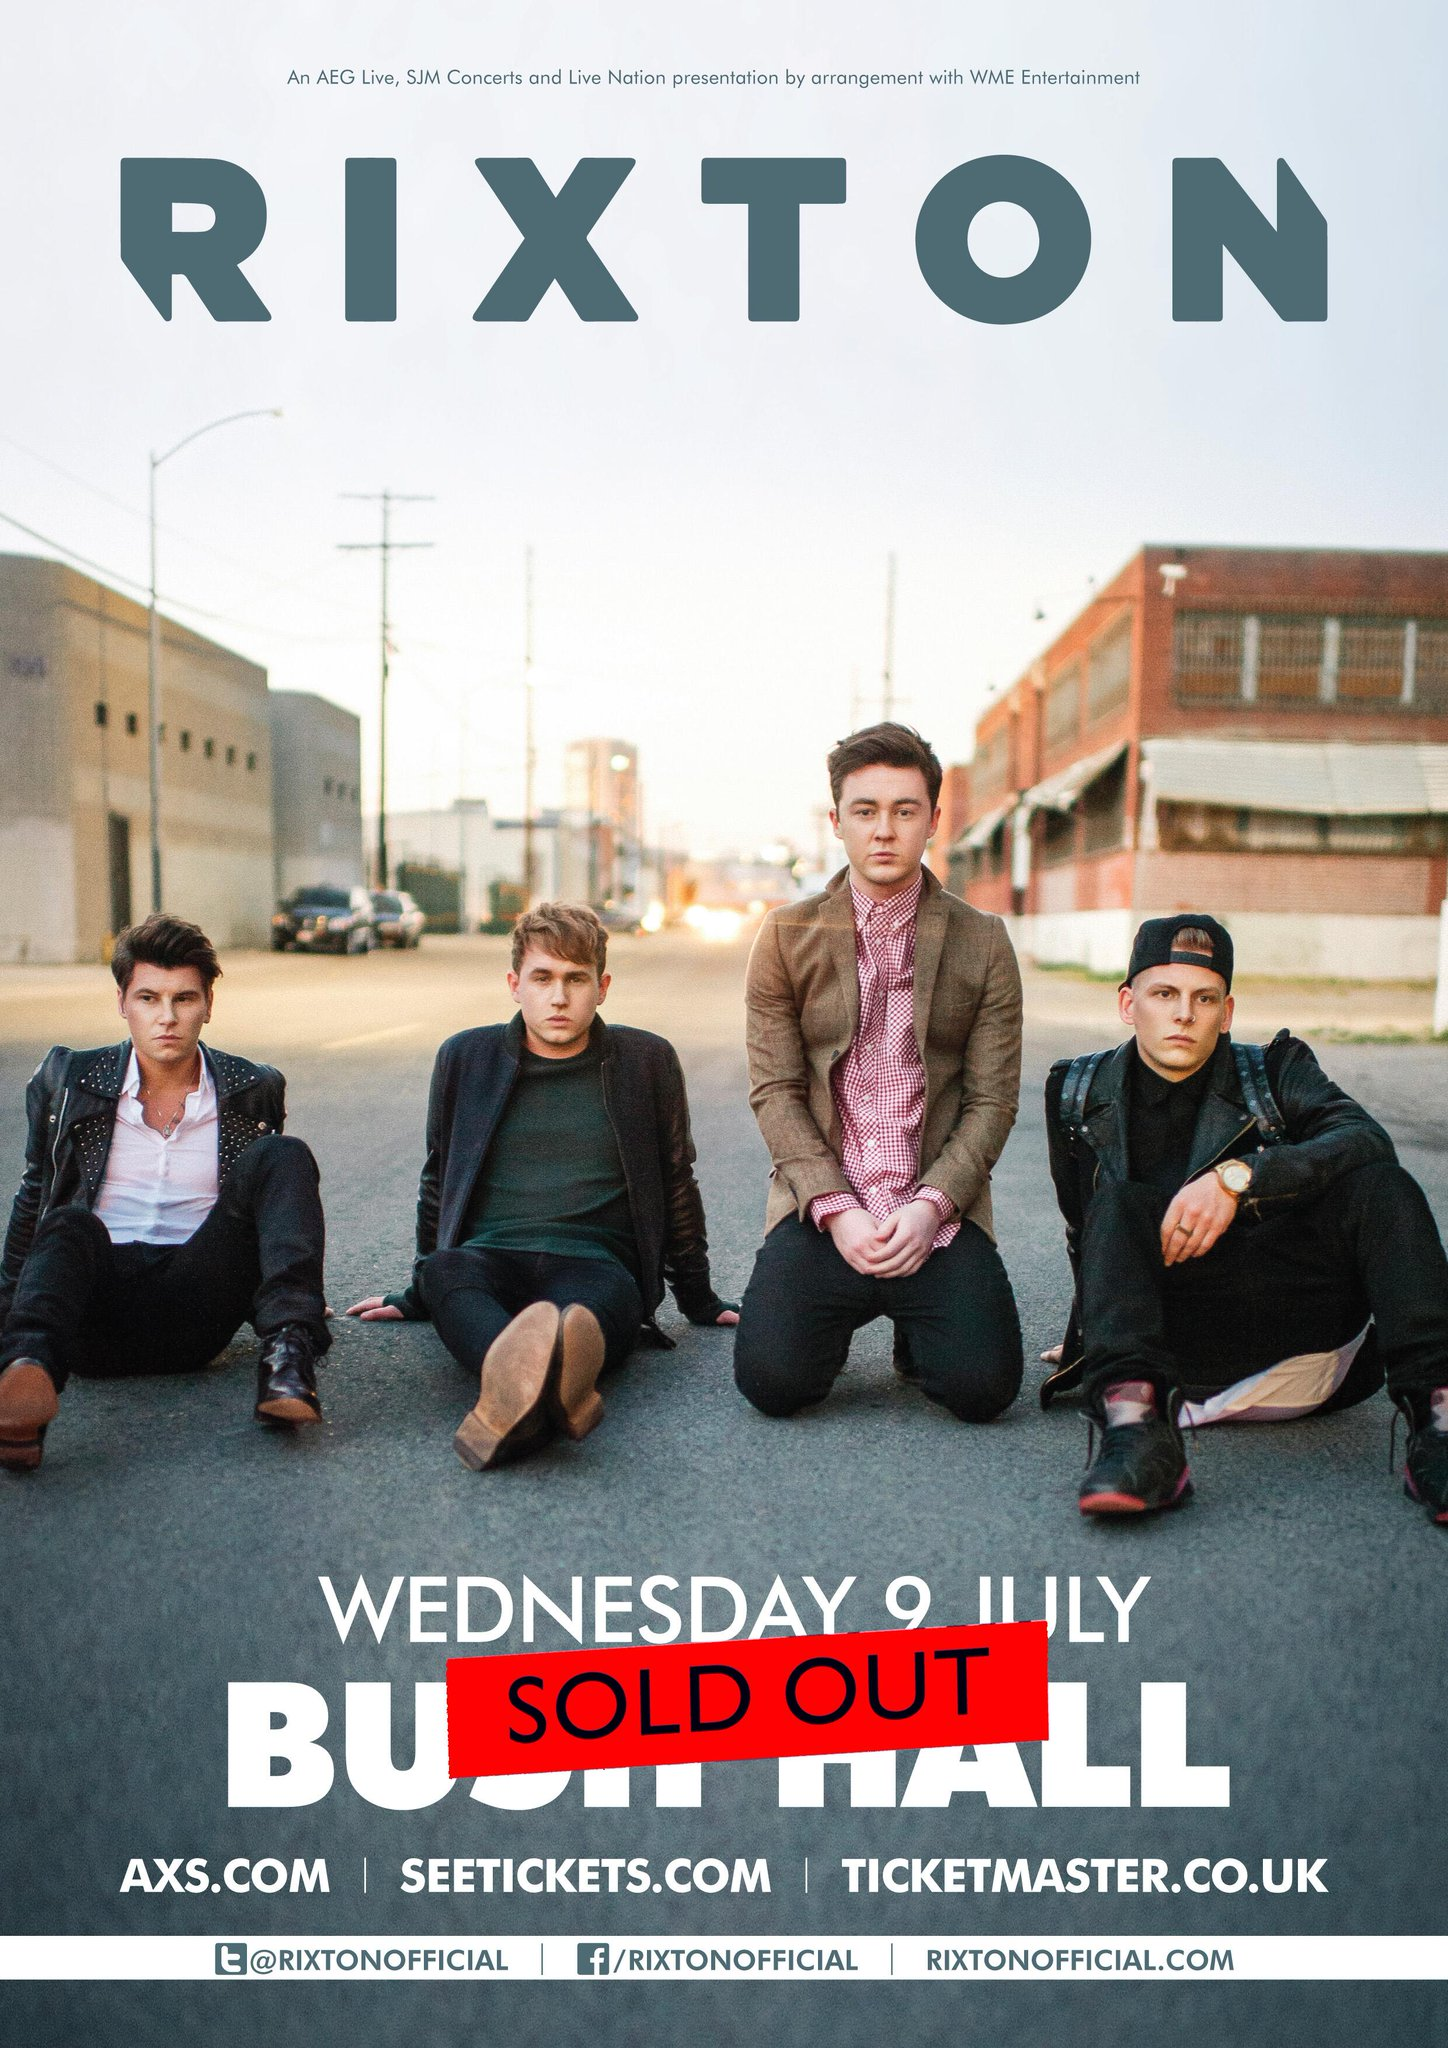 RT @AEG_Live: Is there no stopping @Rixtonofficial? After taking the US by storm, they've SOLD OUT their 2nd London show in a row! http://t…